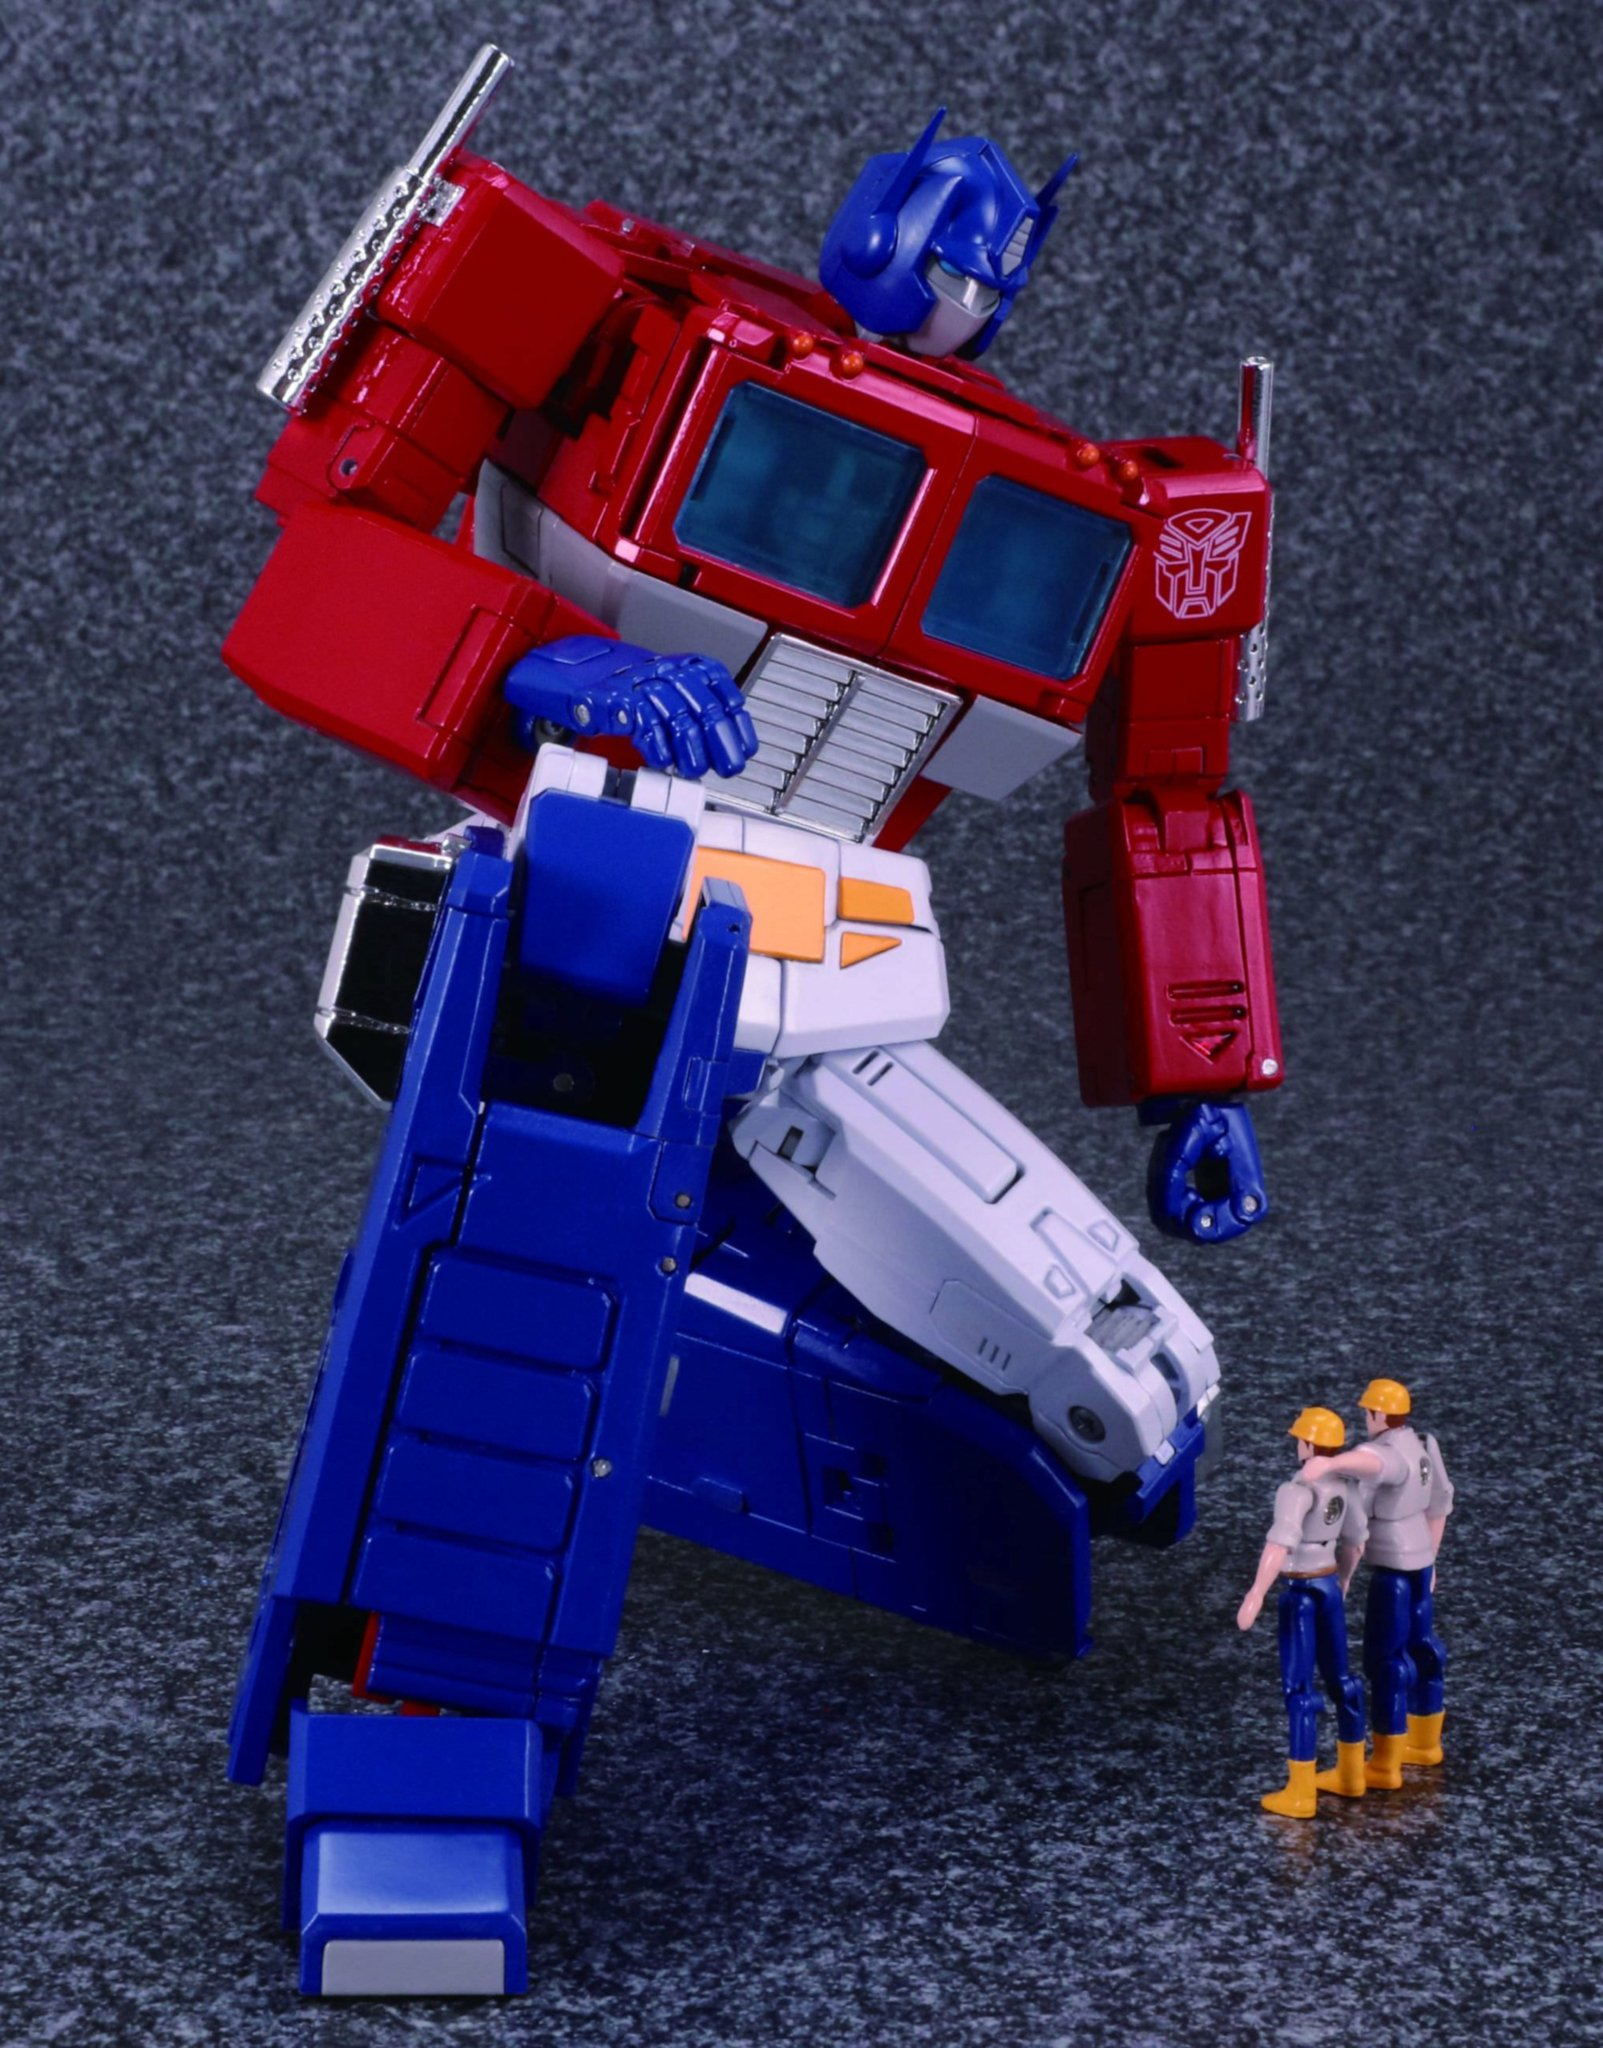 Hasbro-Takara-Transformers-Masterpiece-MP-44-Optimus-Prime-Version-3-Promo-08.jpg